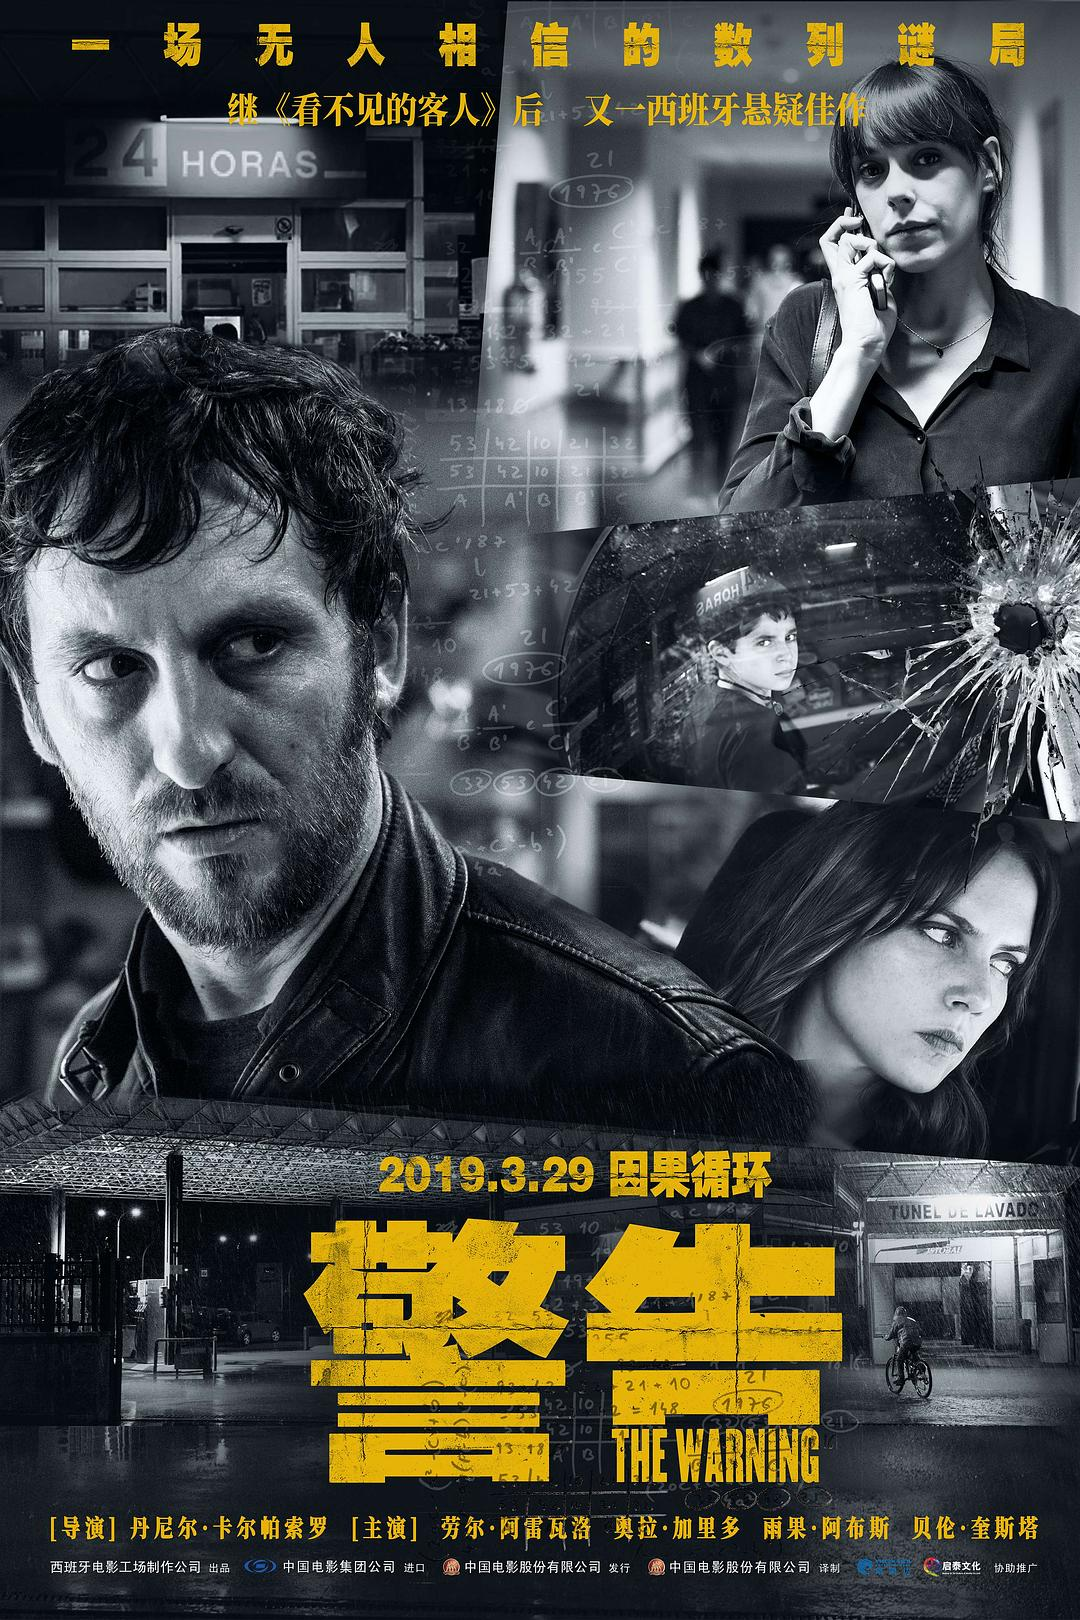 悠悠MP4_MP4电影下载_警告 The.Warning.2018.SPANISH.1080p.NF.WEBRip.DDP5.1.x264-NTG 2.88GB